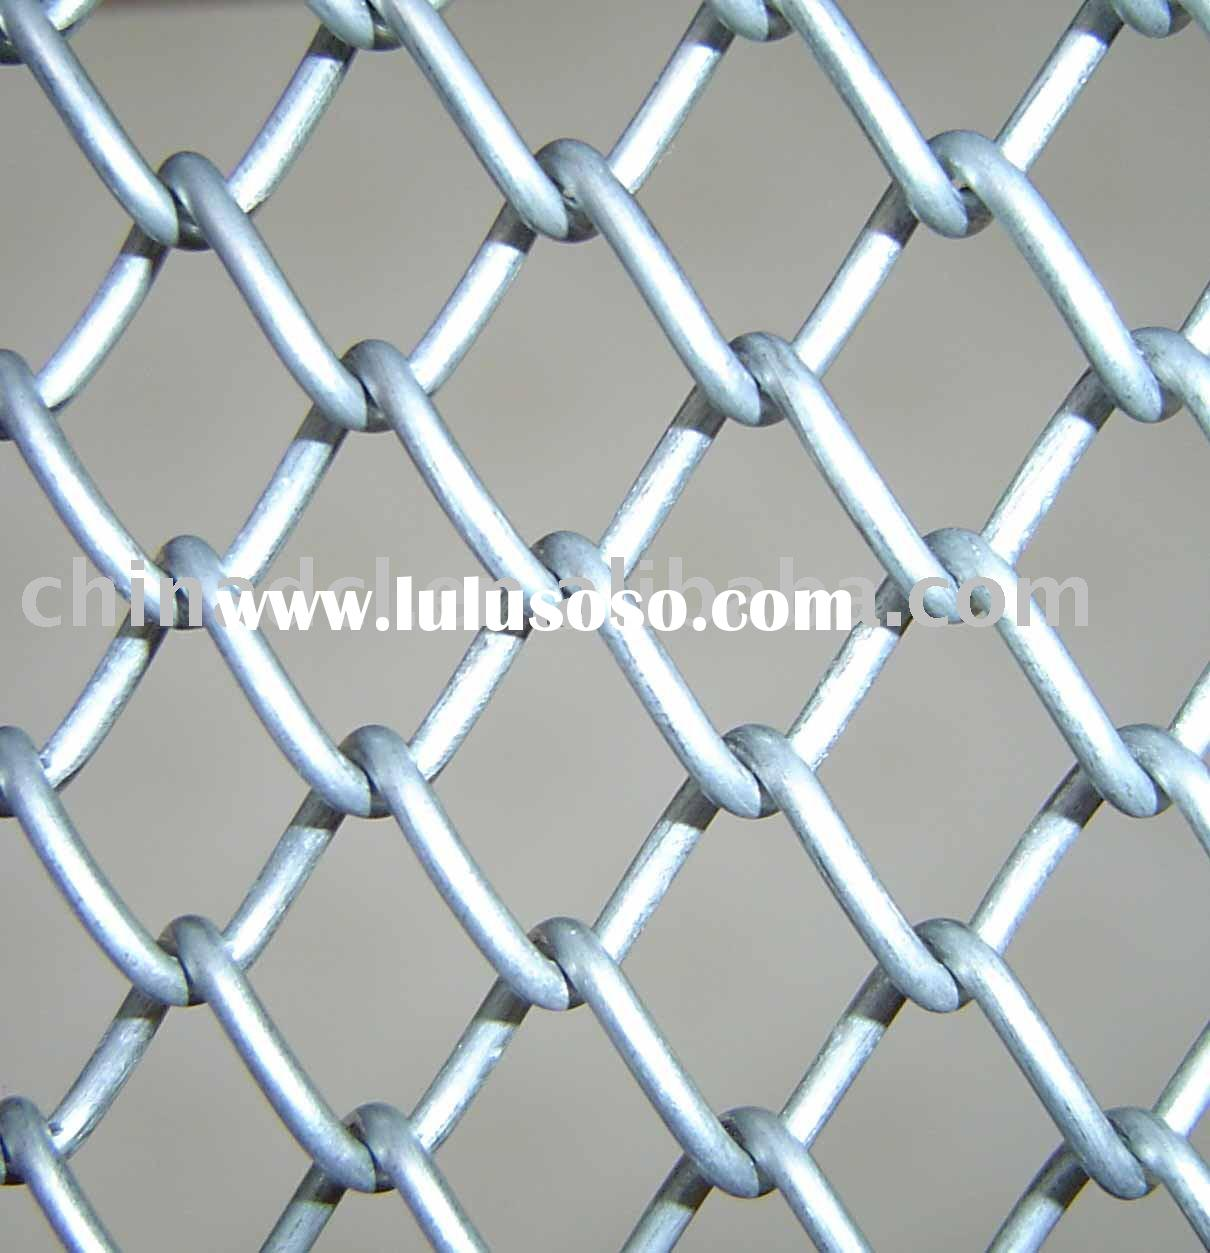 solar chain link fence garden light for sale price hong. Black Bedroom Furniture Sets. Home Design Ideas